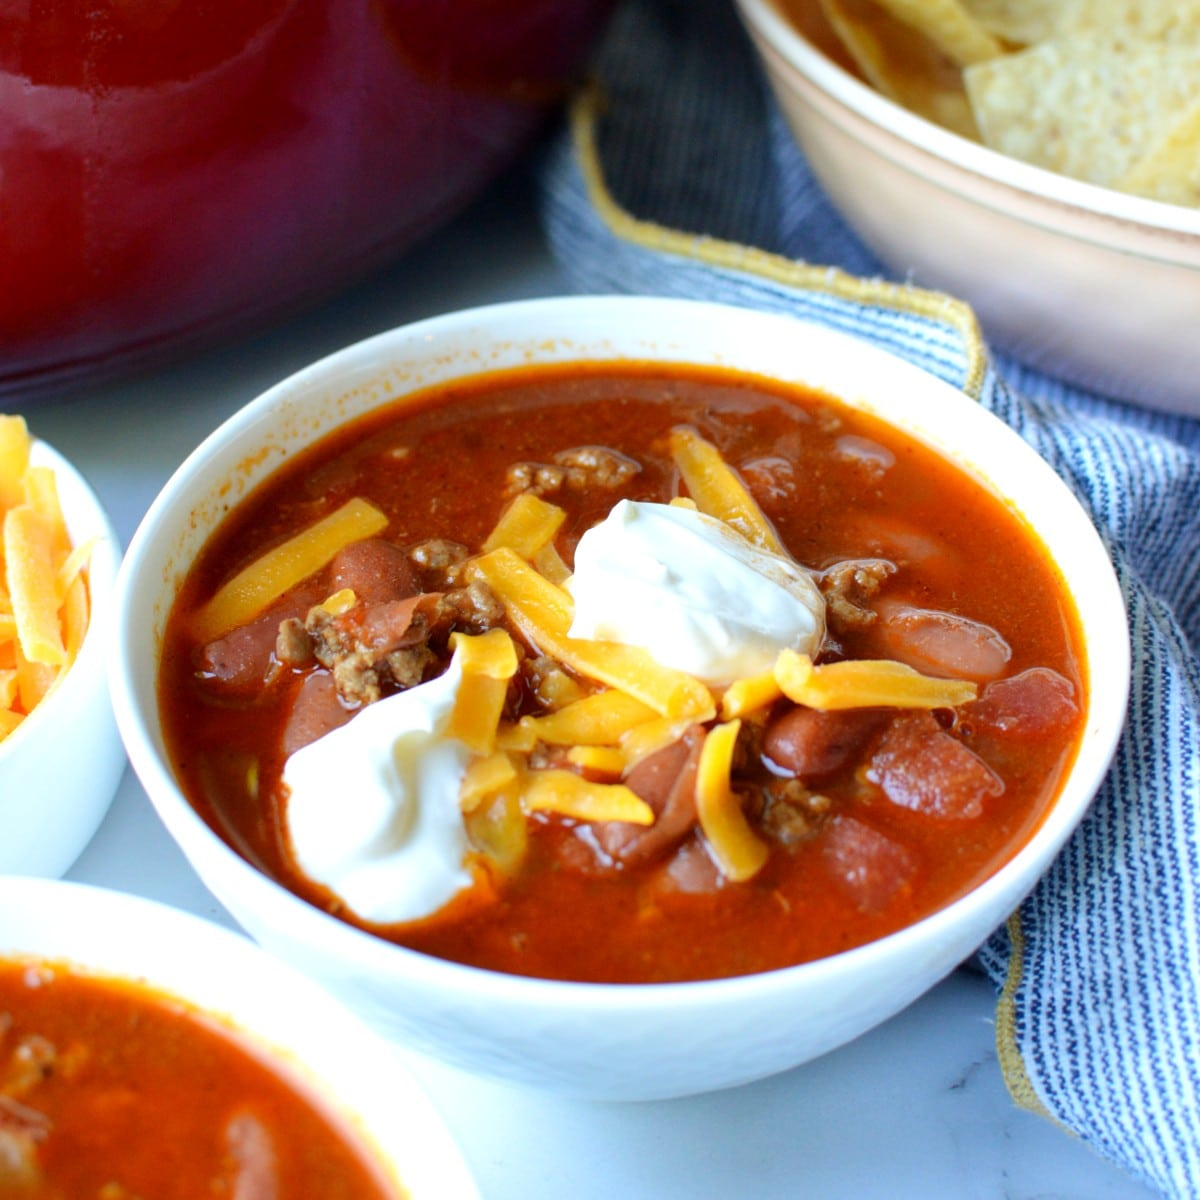 a bowl of chili with cheese